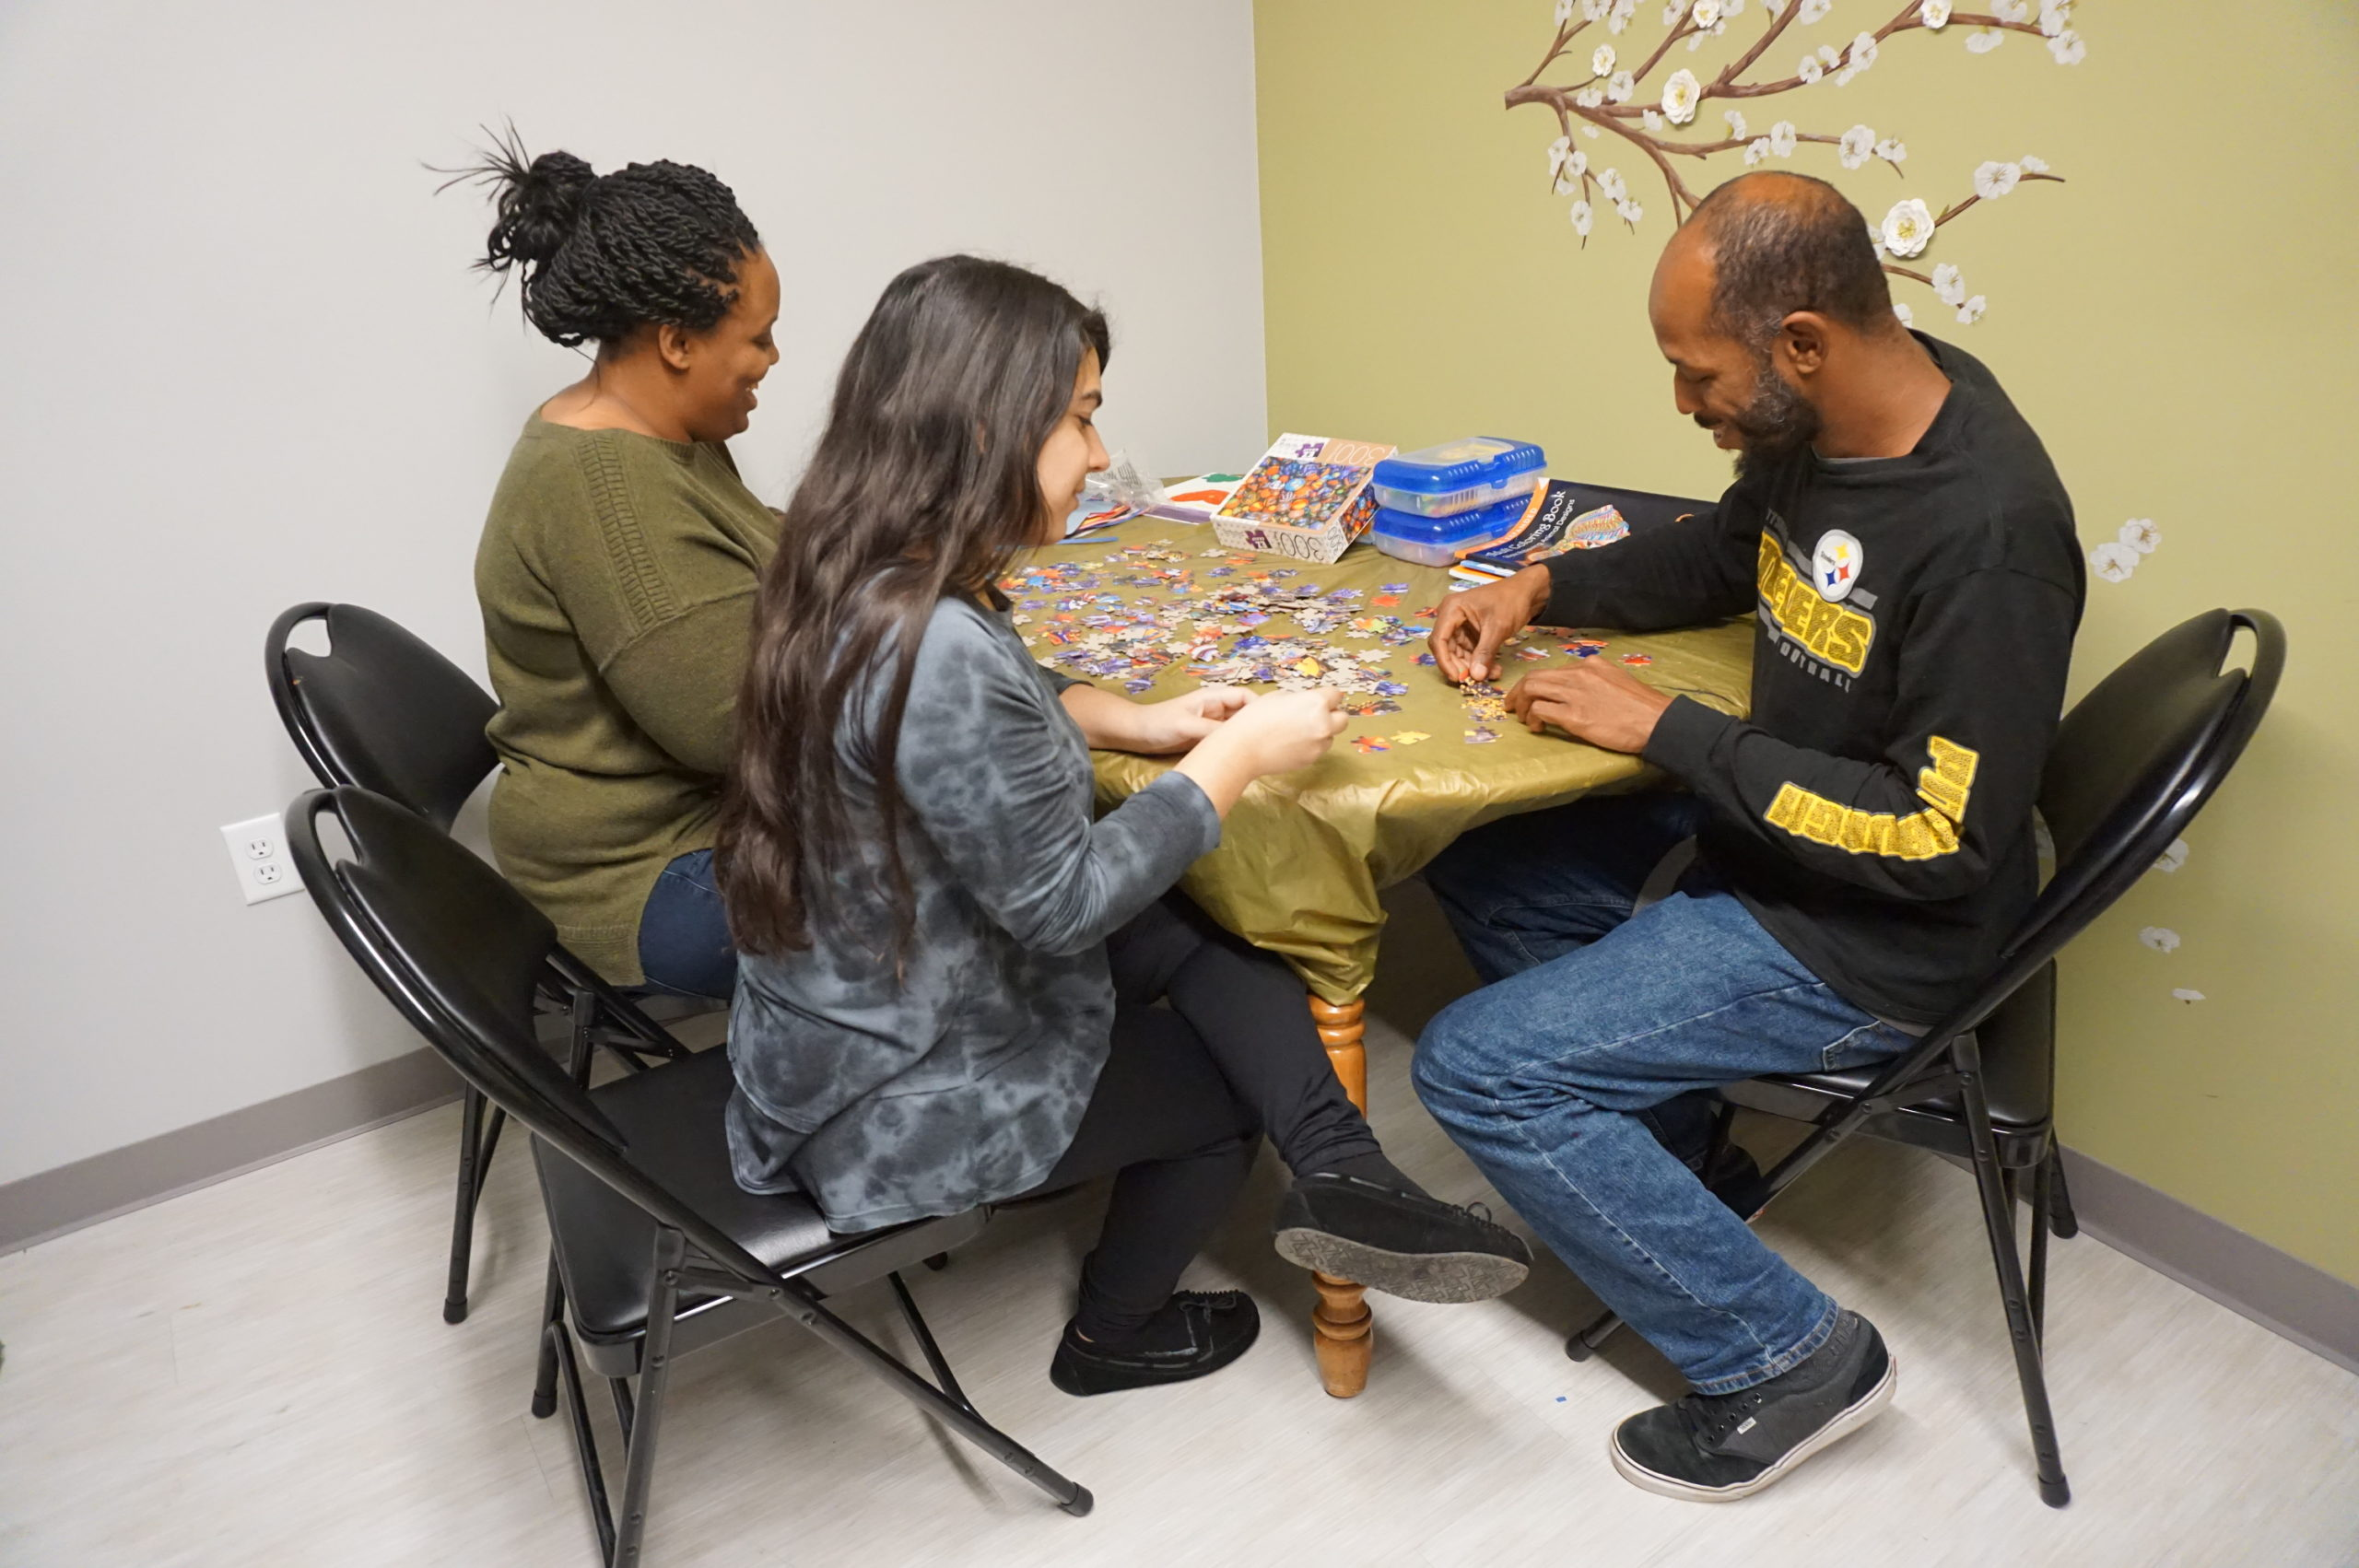 Essex County Wellness Respite Services Helps Those In Crisis At Better Life